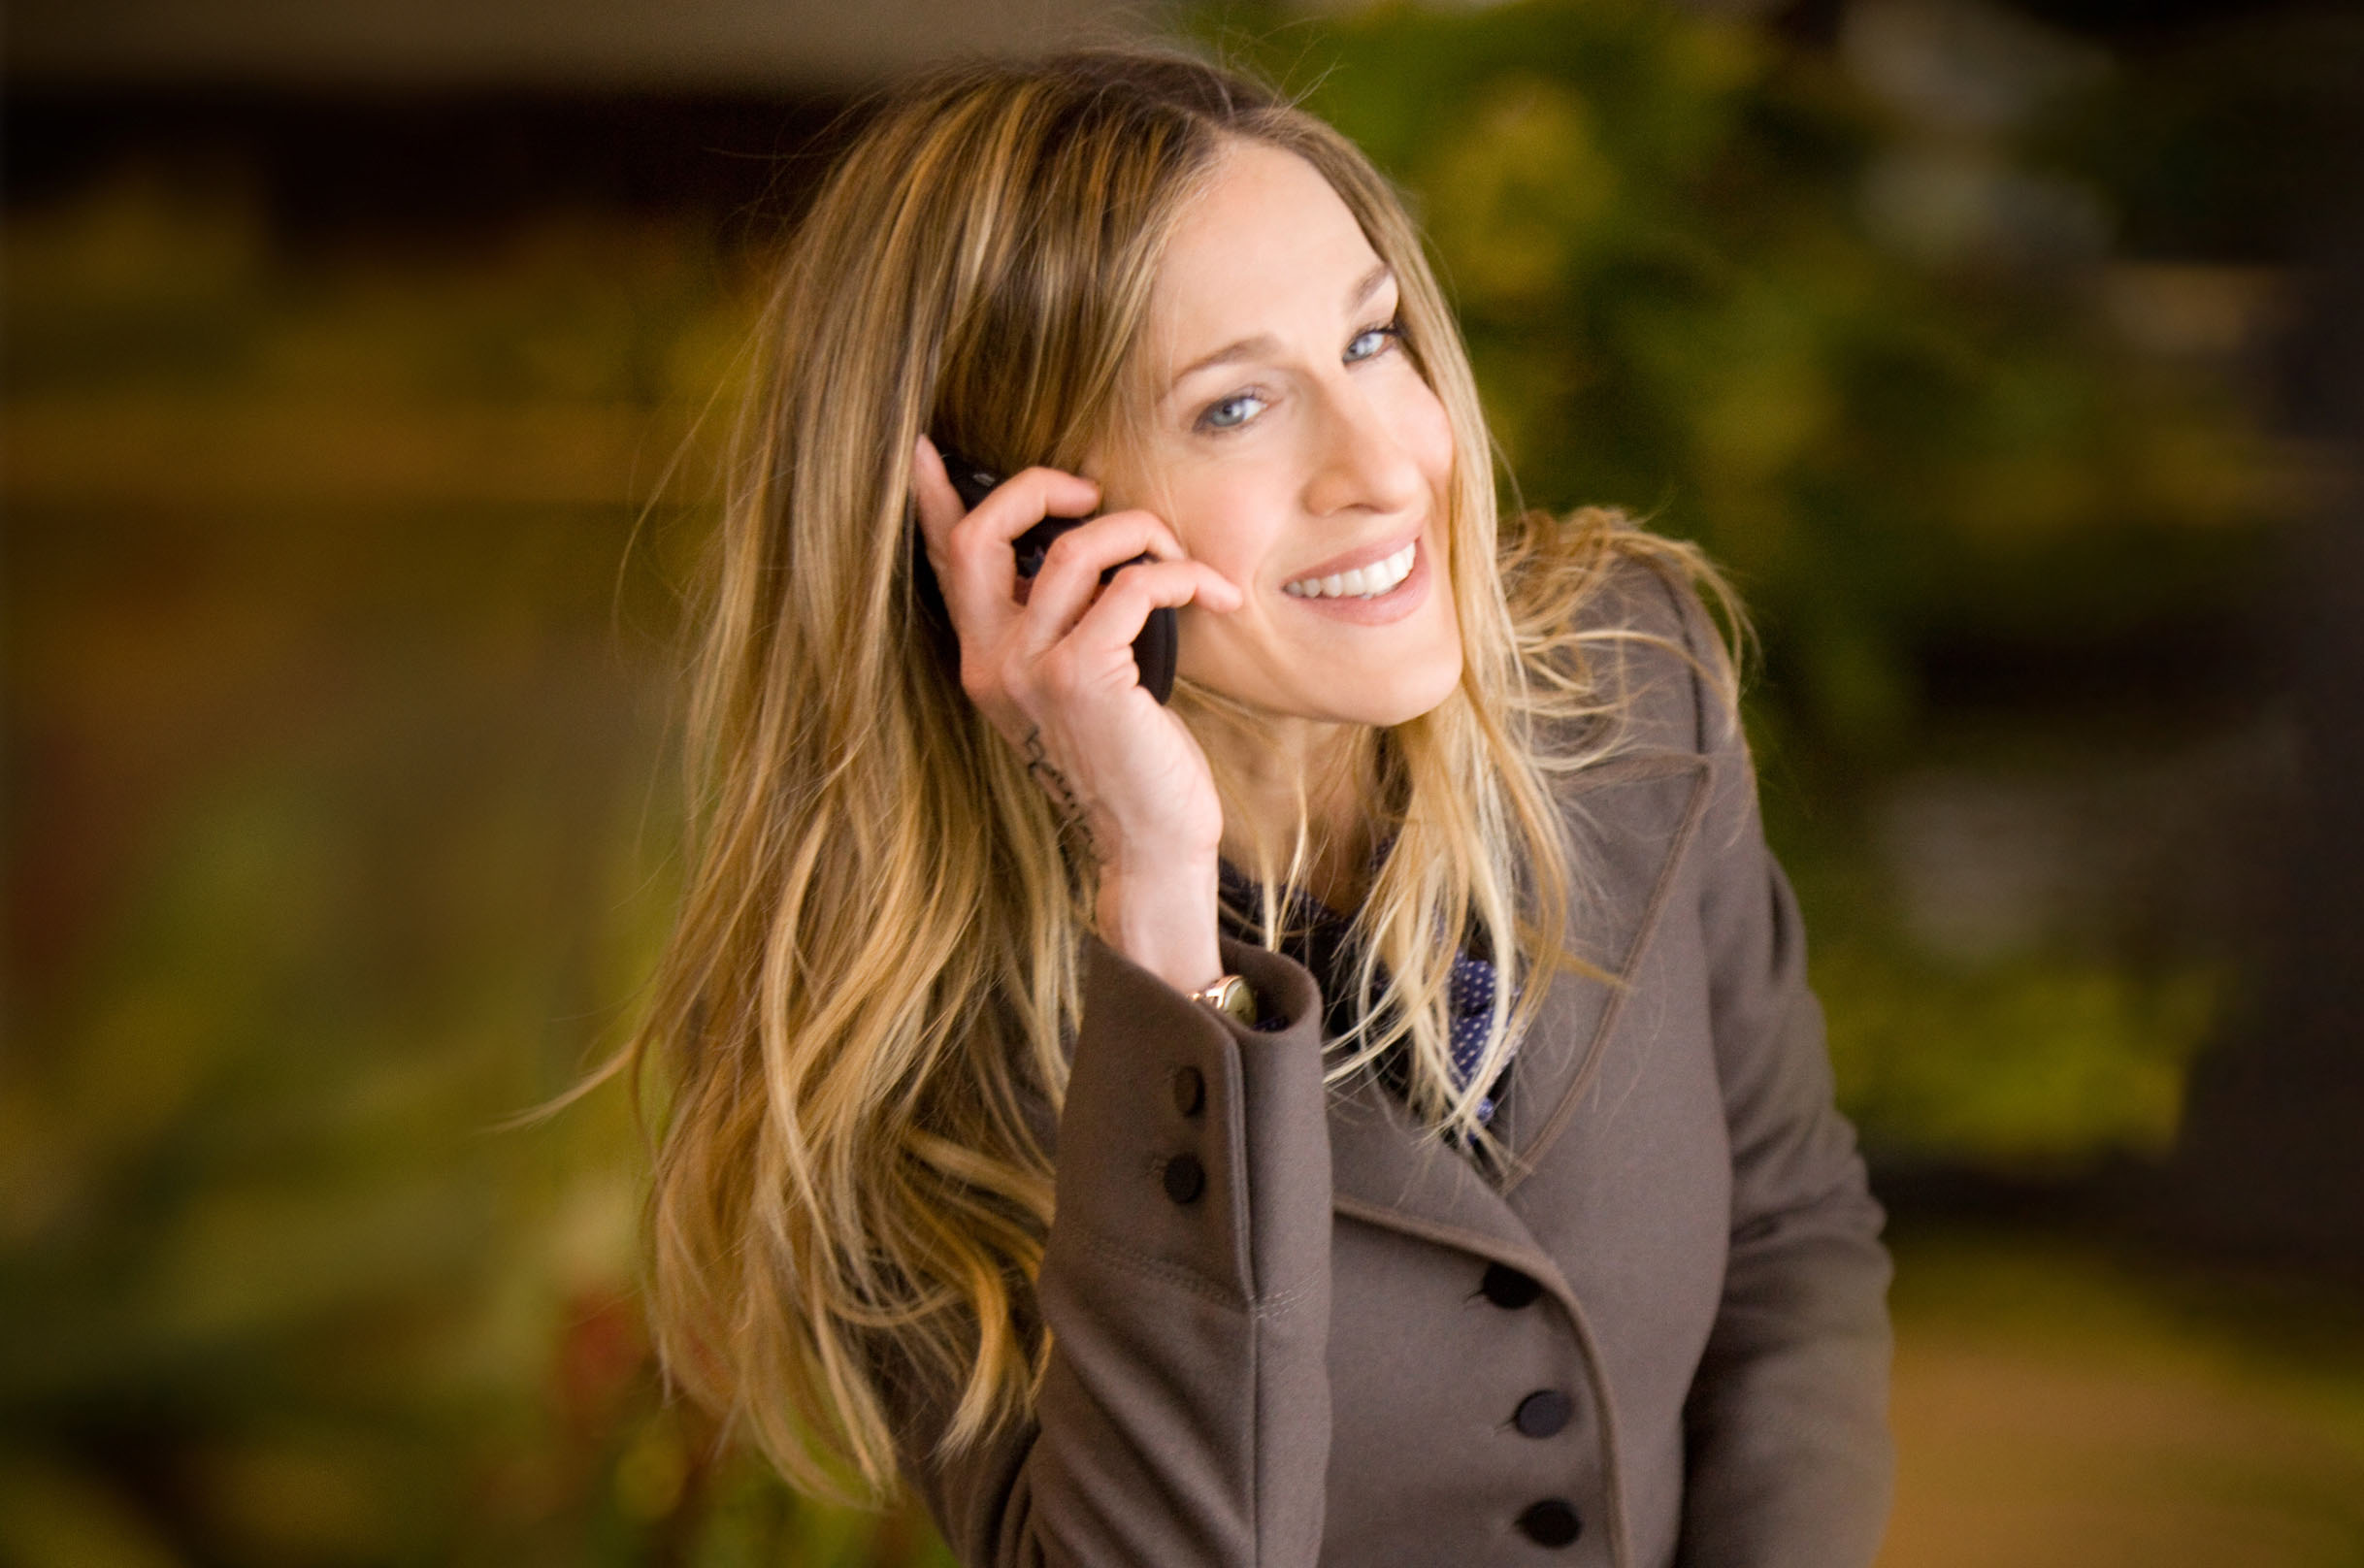 Phone alone: Sarah Jessica Parker plays supermom Kate in 'I Don't Know How She Does it.' | © 2011 IDK USA, LLC. All Rights Reserved.